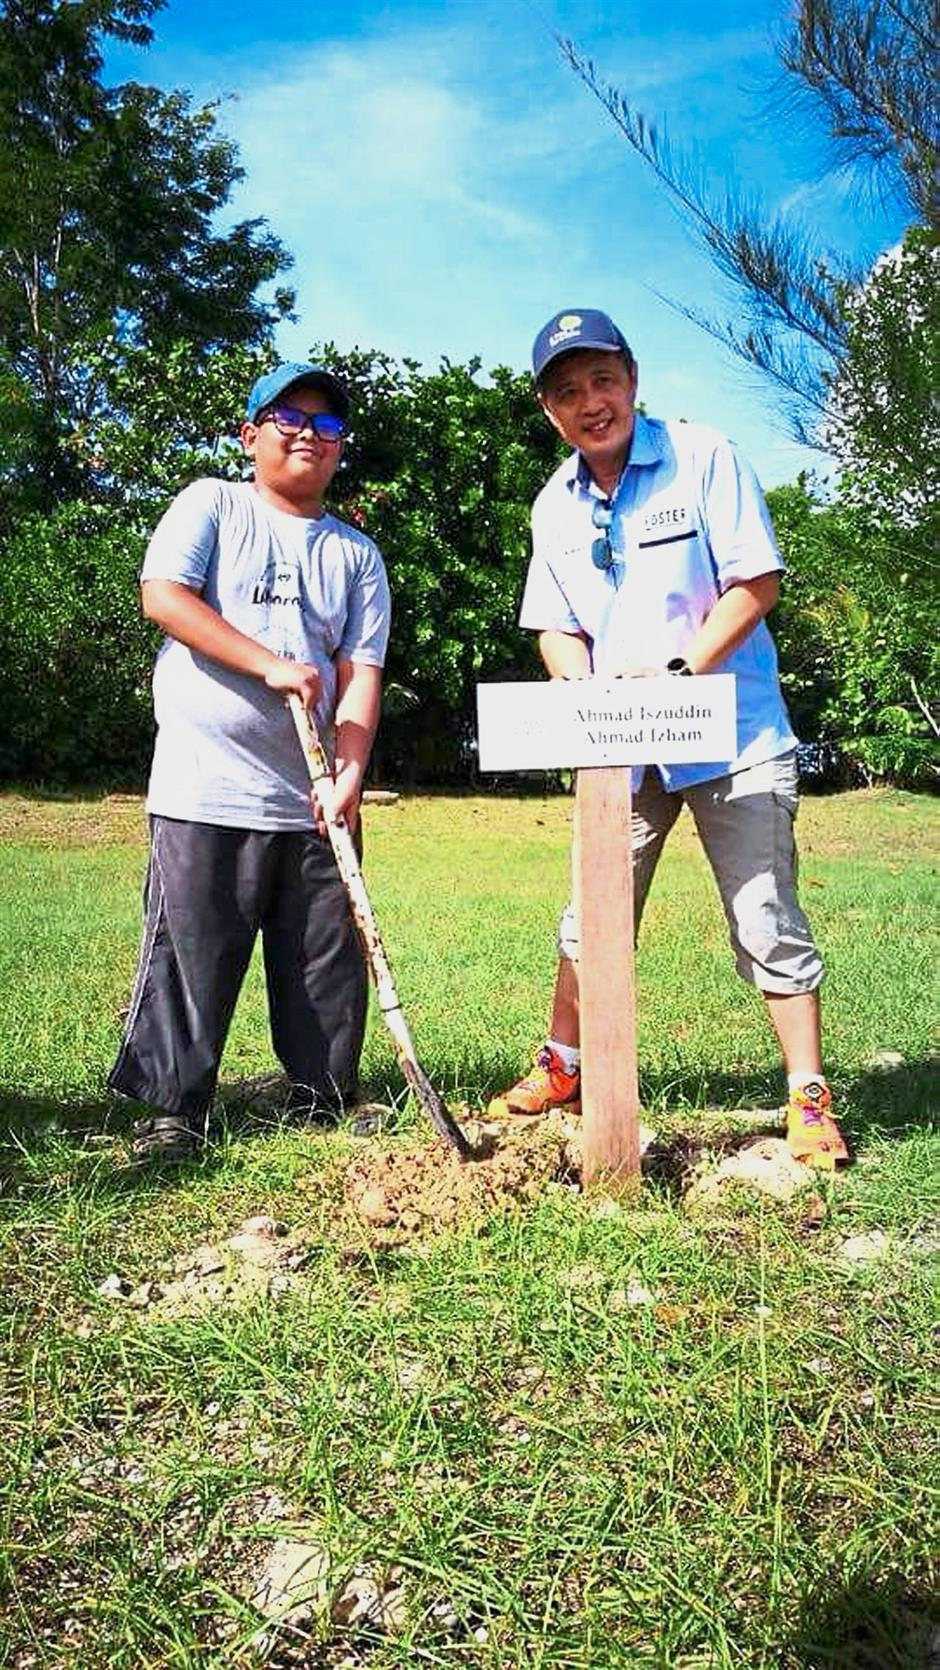 Iszuddin (left) and Yee putting up a signboard marking the 100m area adopted by the former.